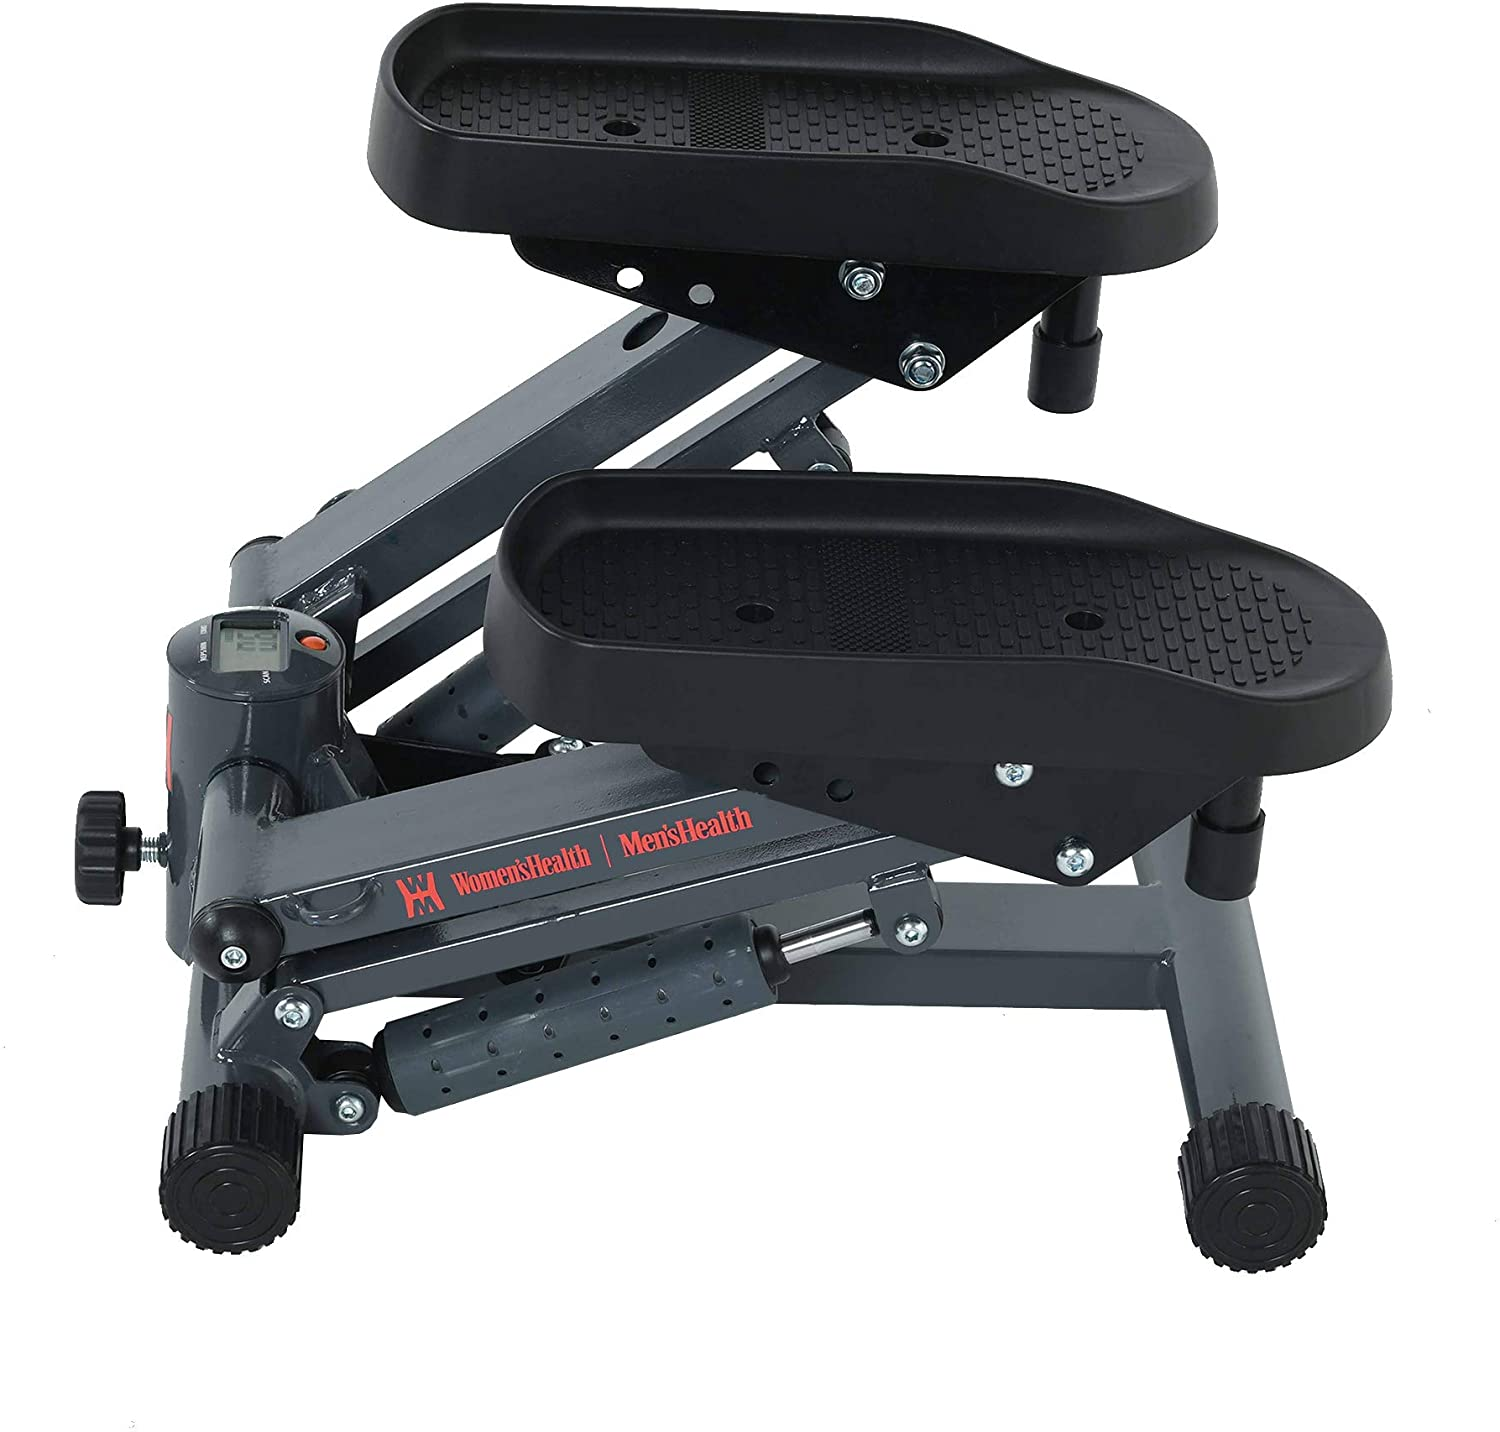 Cardio Stair Stepper with Adaptable Resistance Bands